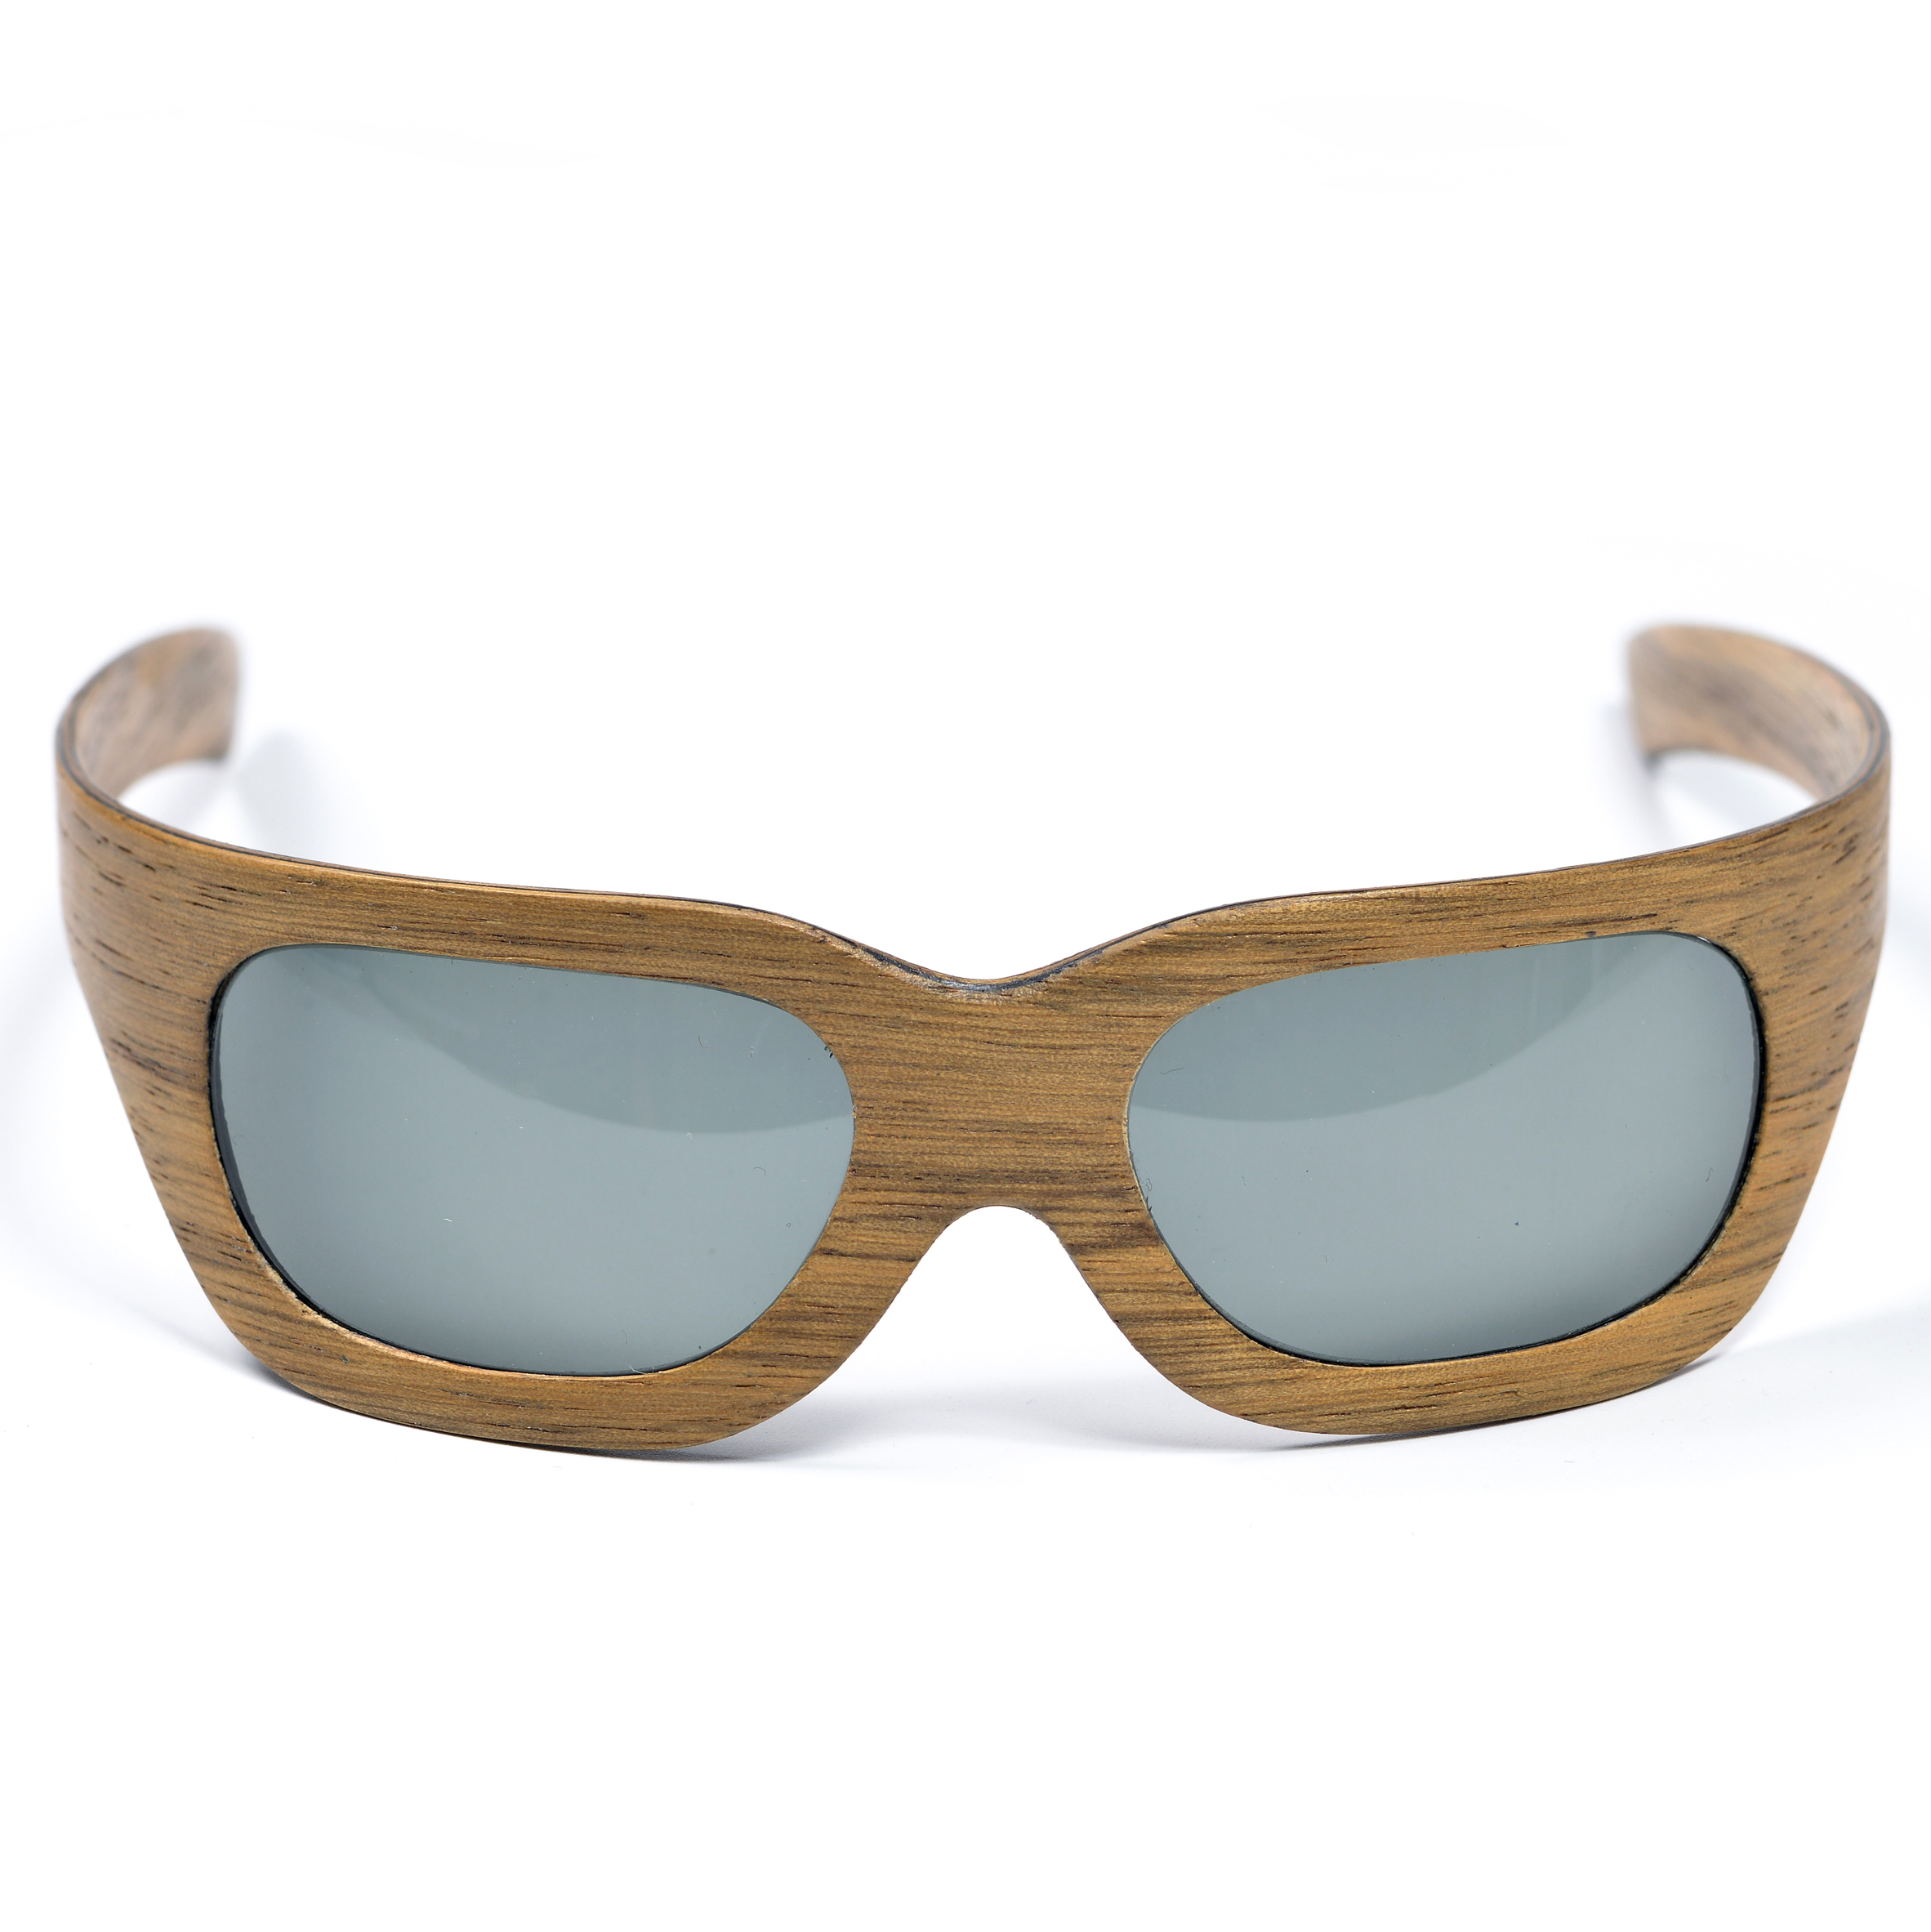 carbonwood-glasses-ezri-tarazi-design-overview-eyewear-exhibition-design-museum-holon_dezeen_sq